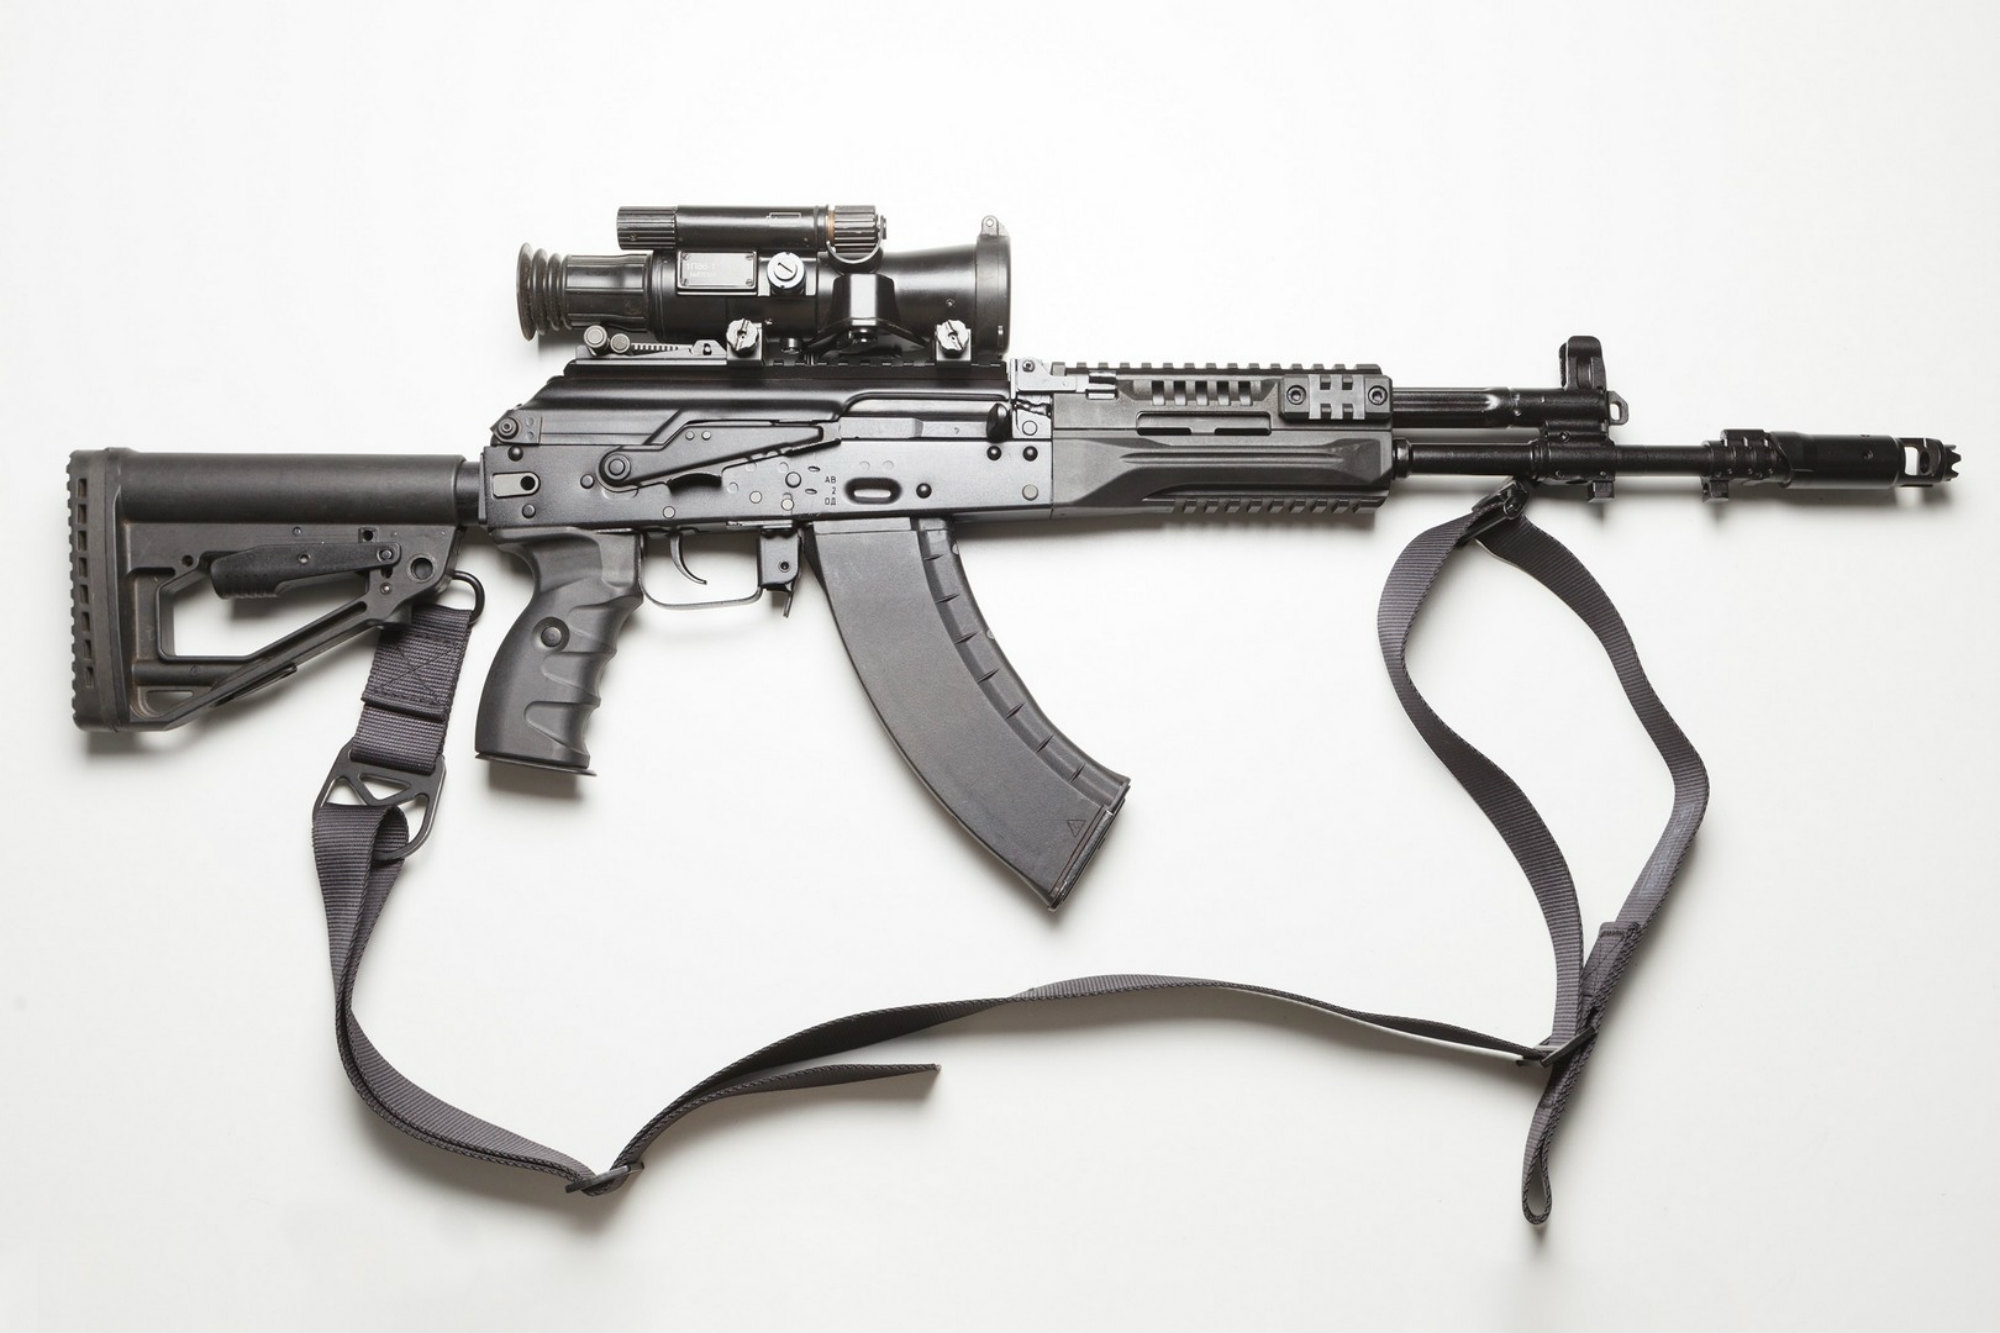 New AK-12 assault rifle right side view